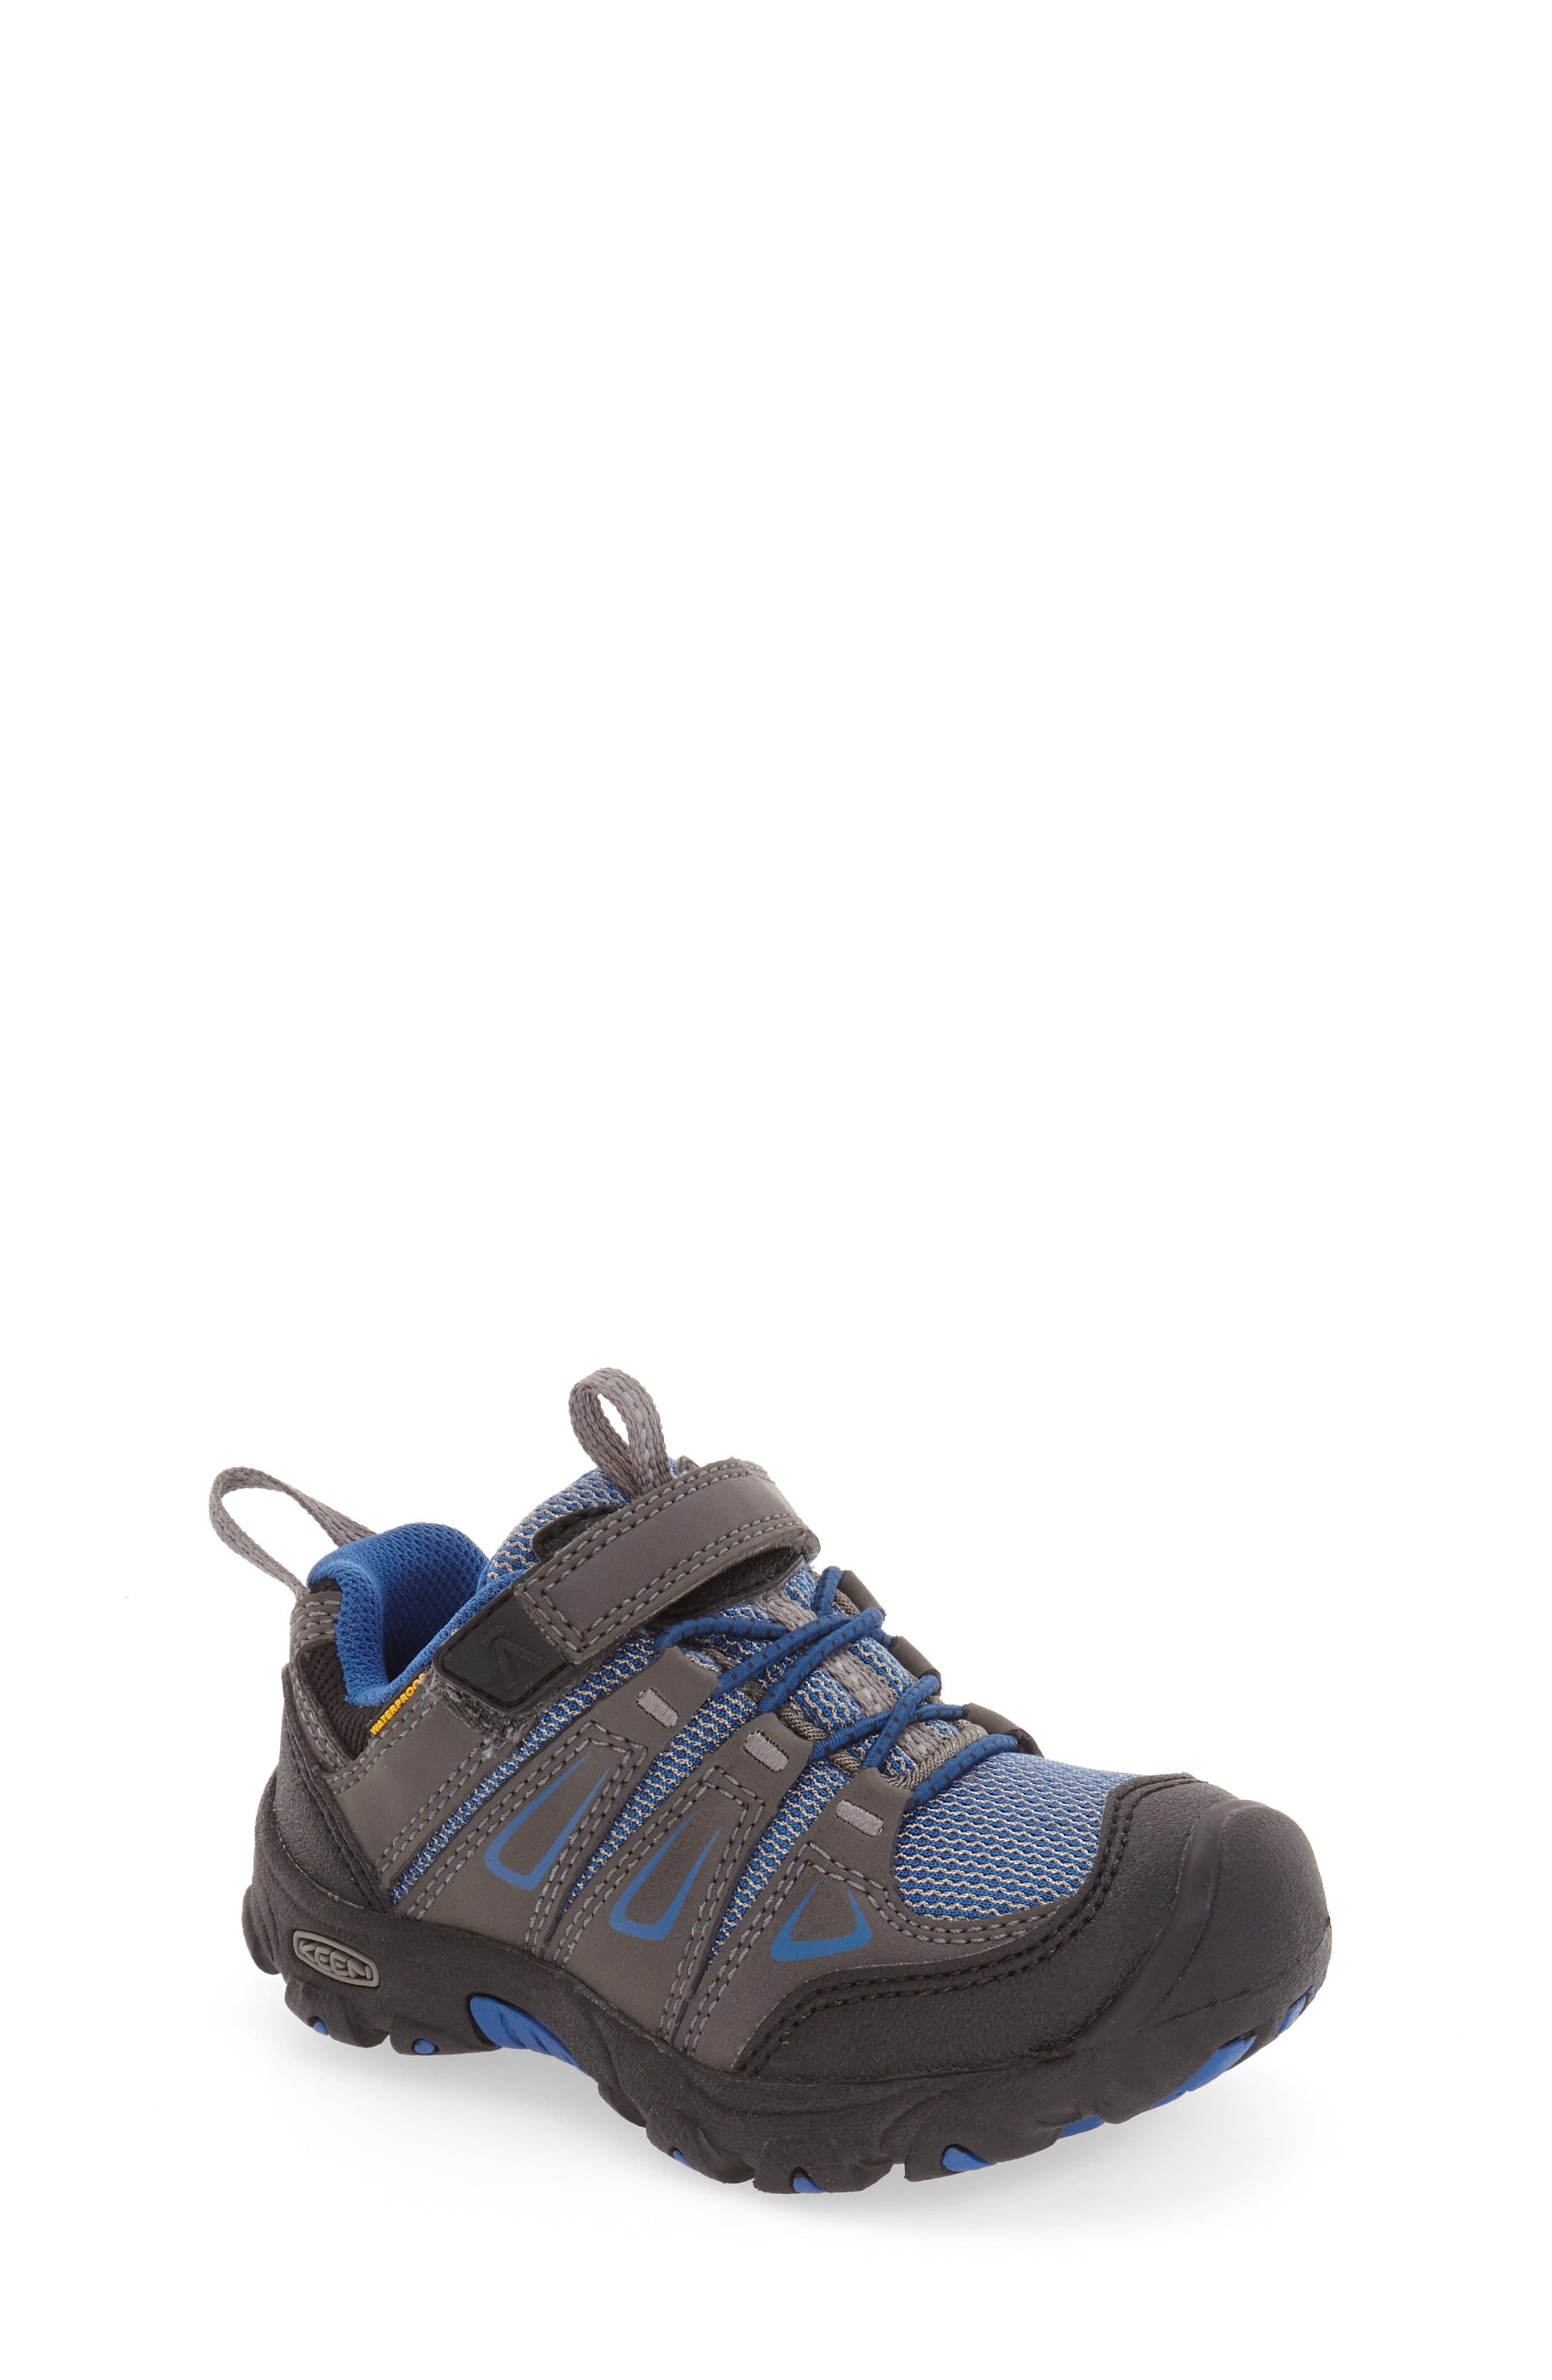 Keen Oakridge Hiking Shoe (Toddler, Little Kid & Big Kid)